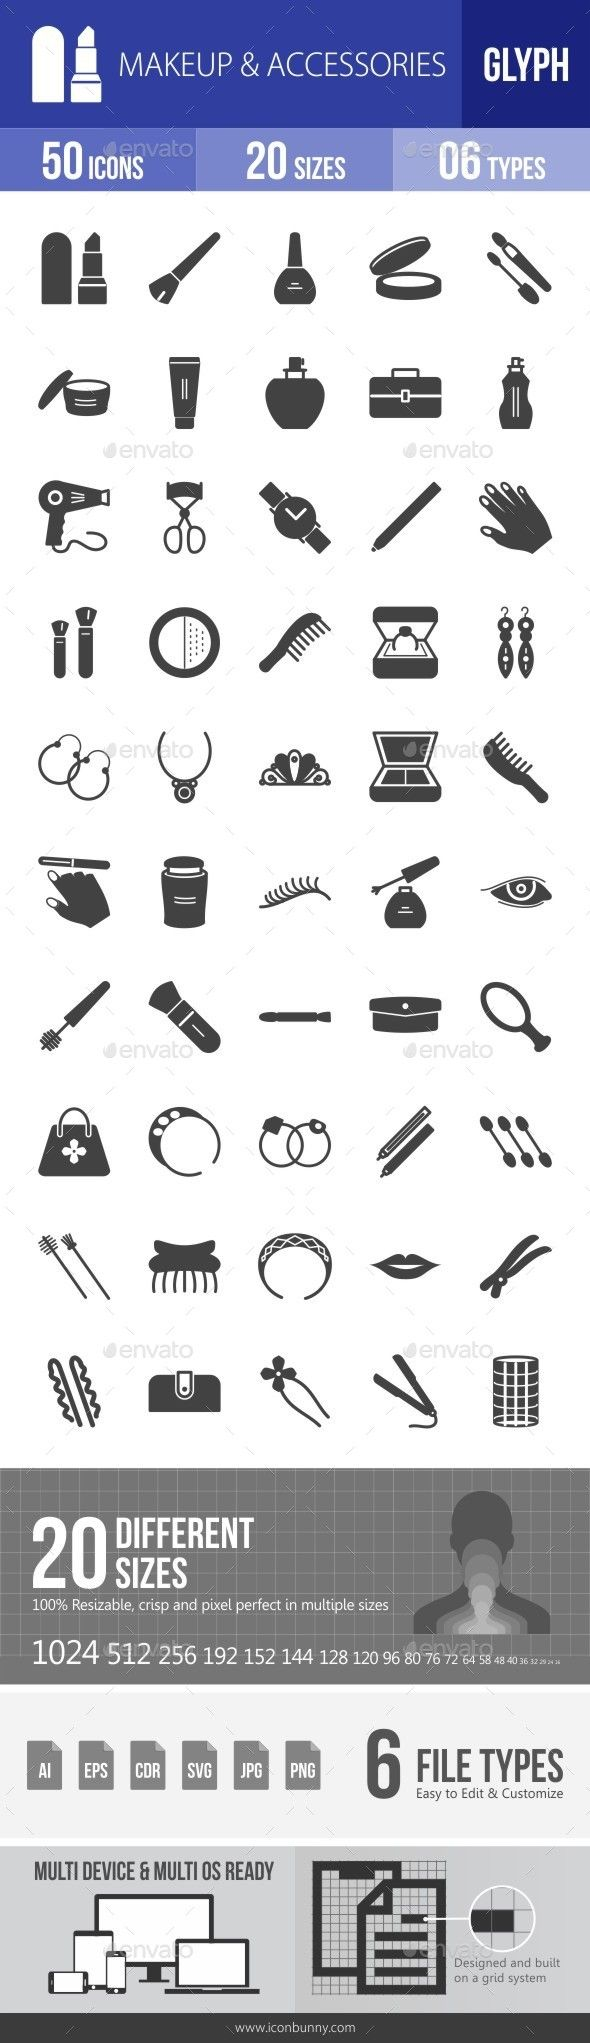 Makeup & Accessories Glyph Icons